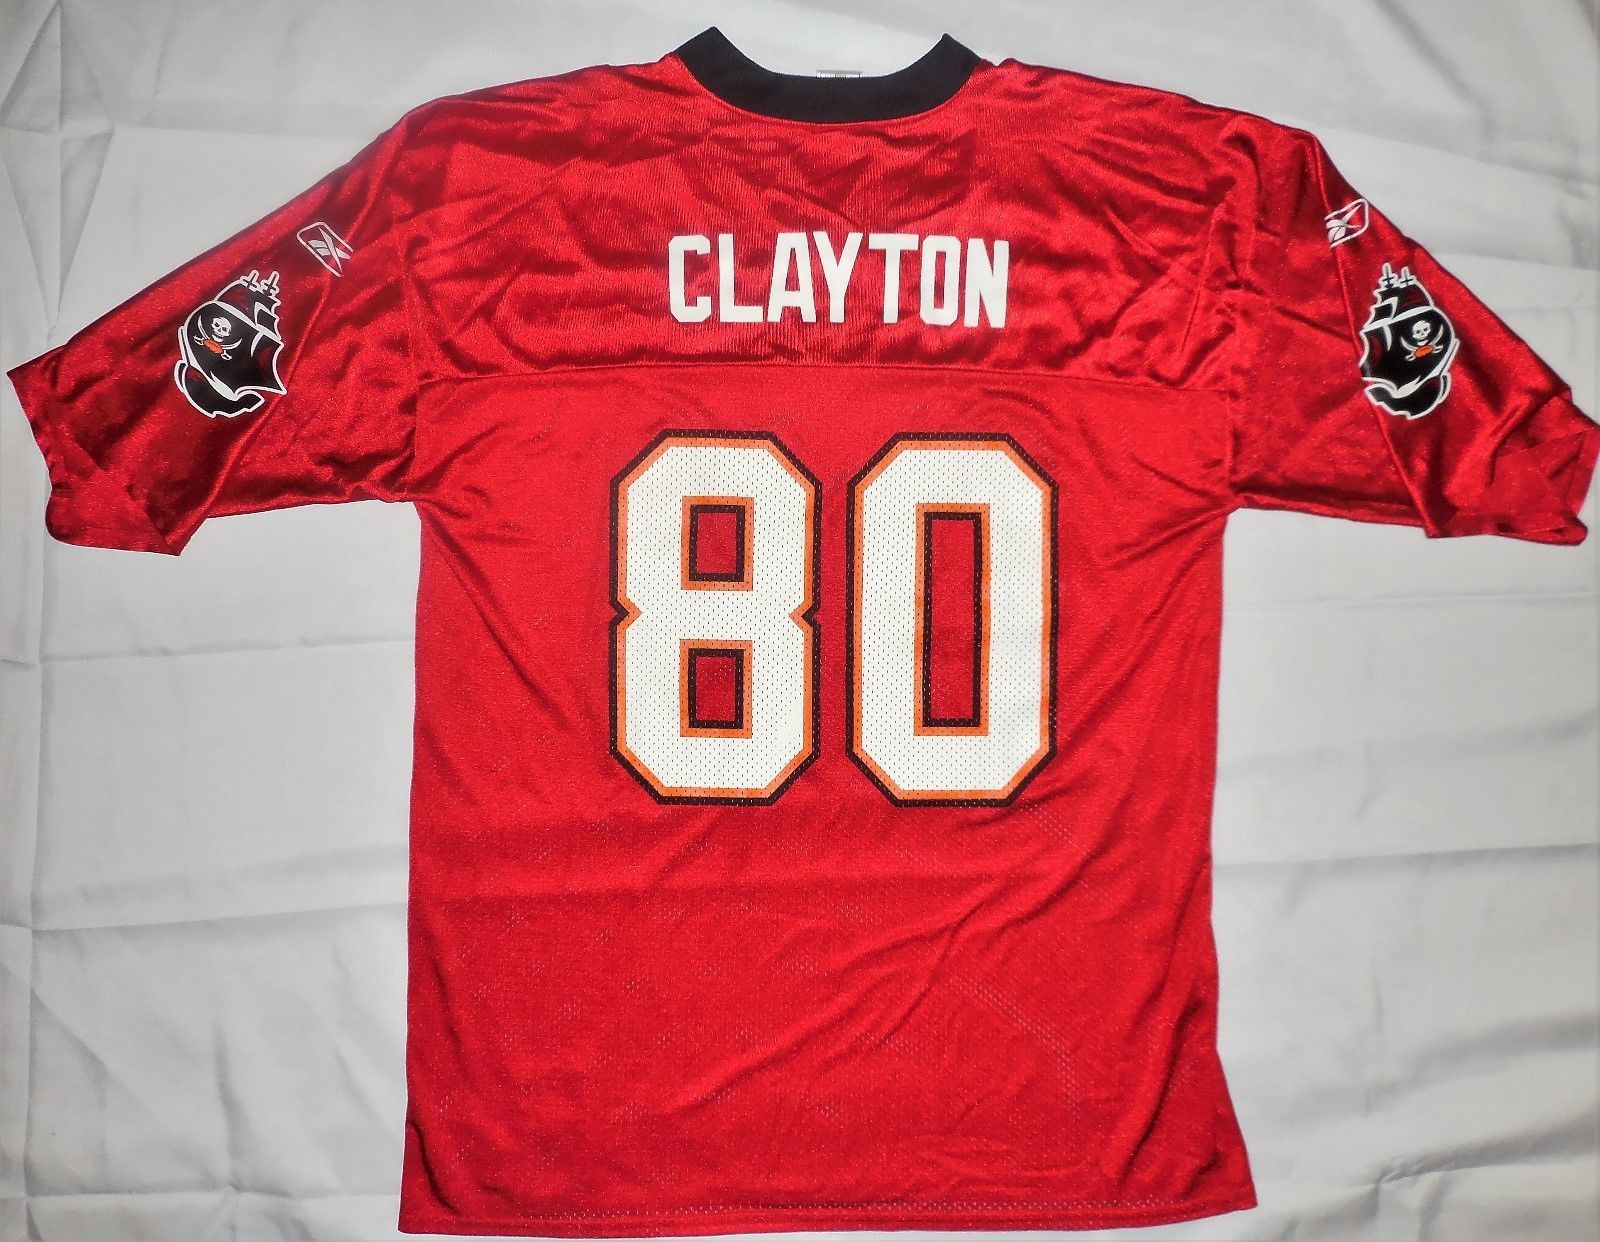 Primary image for Tampa Bay Buccaneers Clayton #80 Football Jersey Reebok NFL Players Large Red